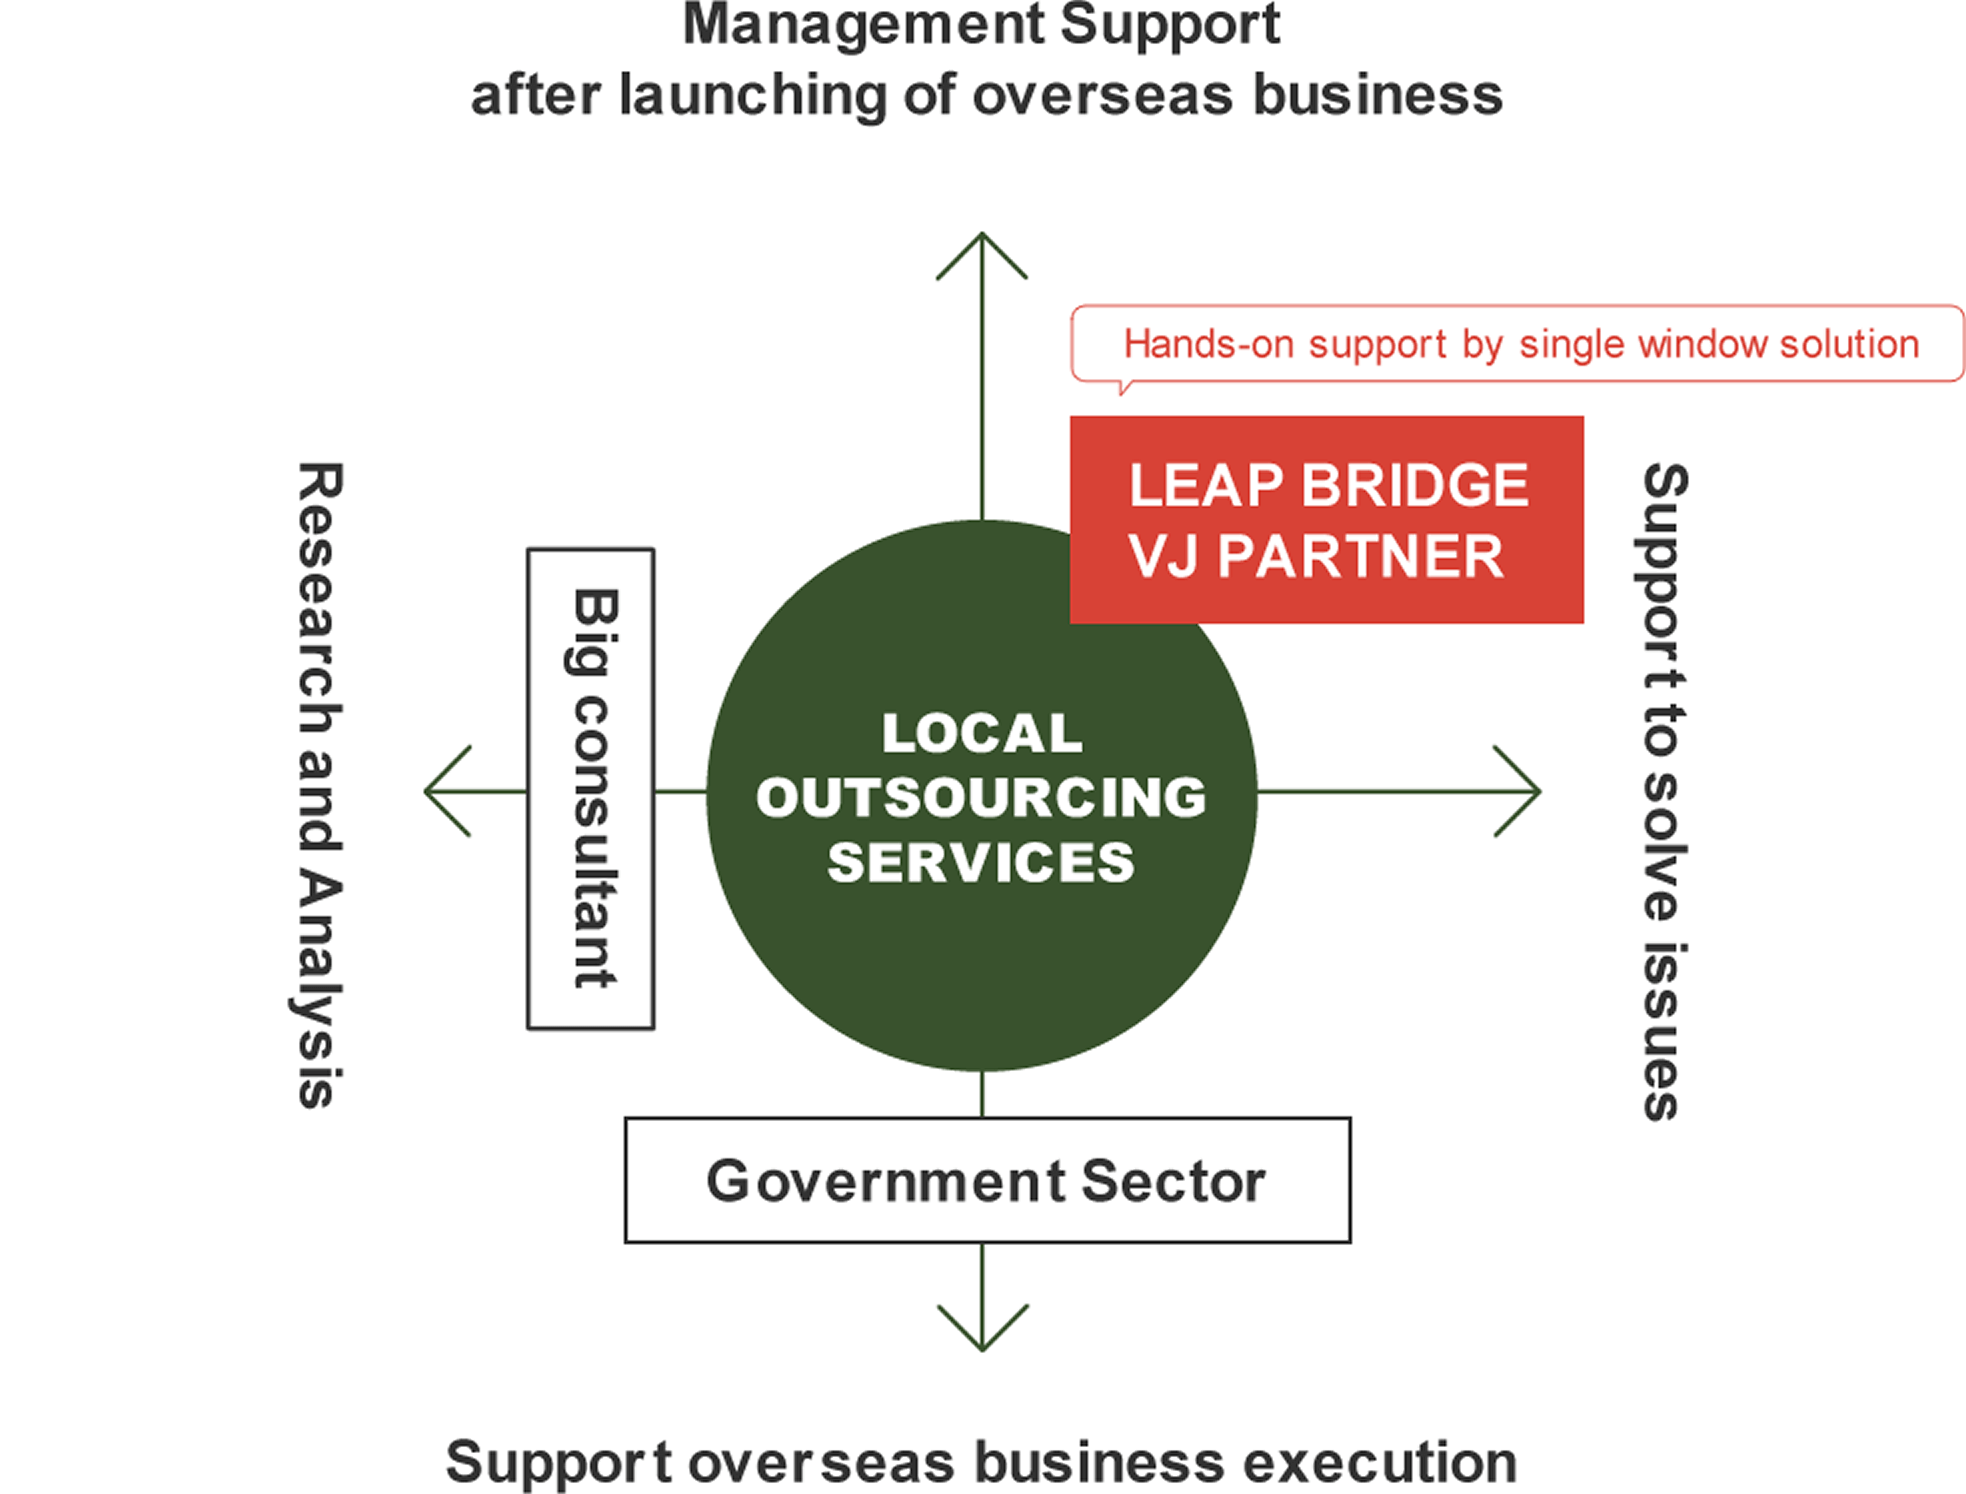 Management Support after launching of overseas business